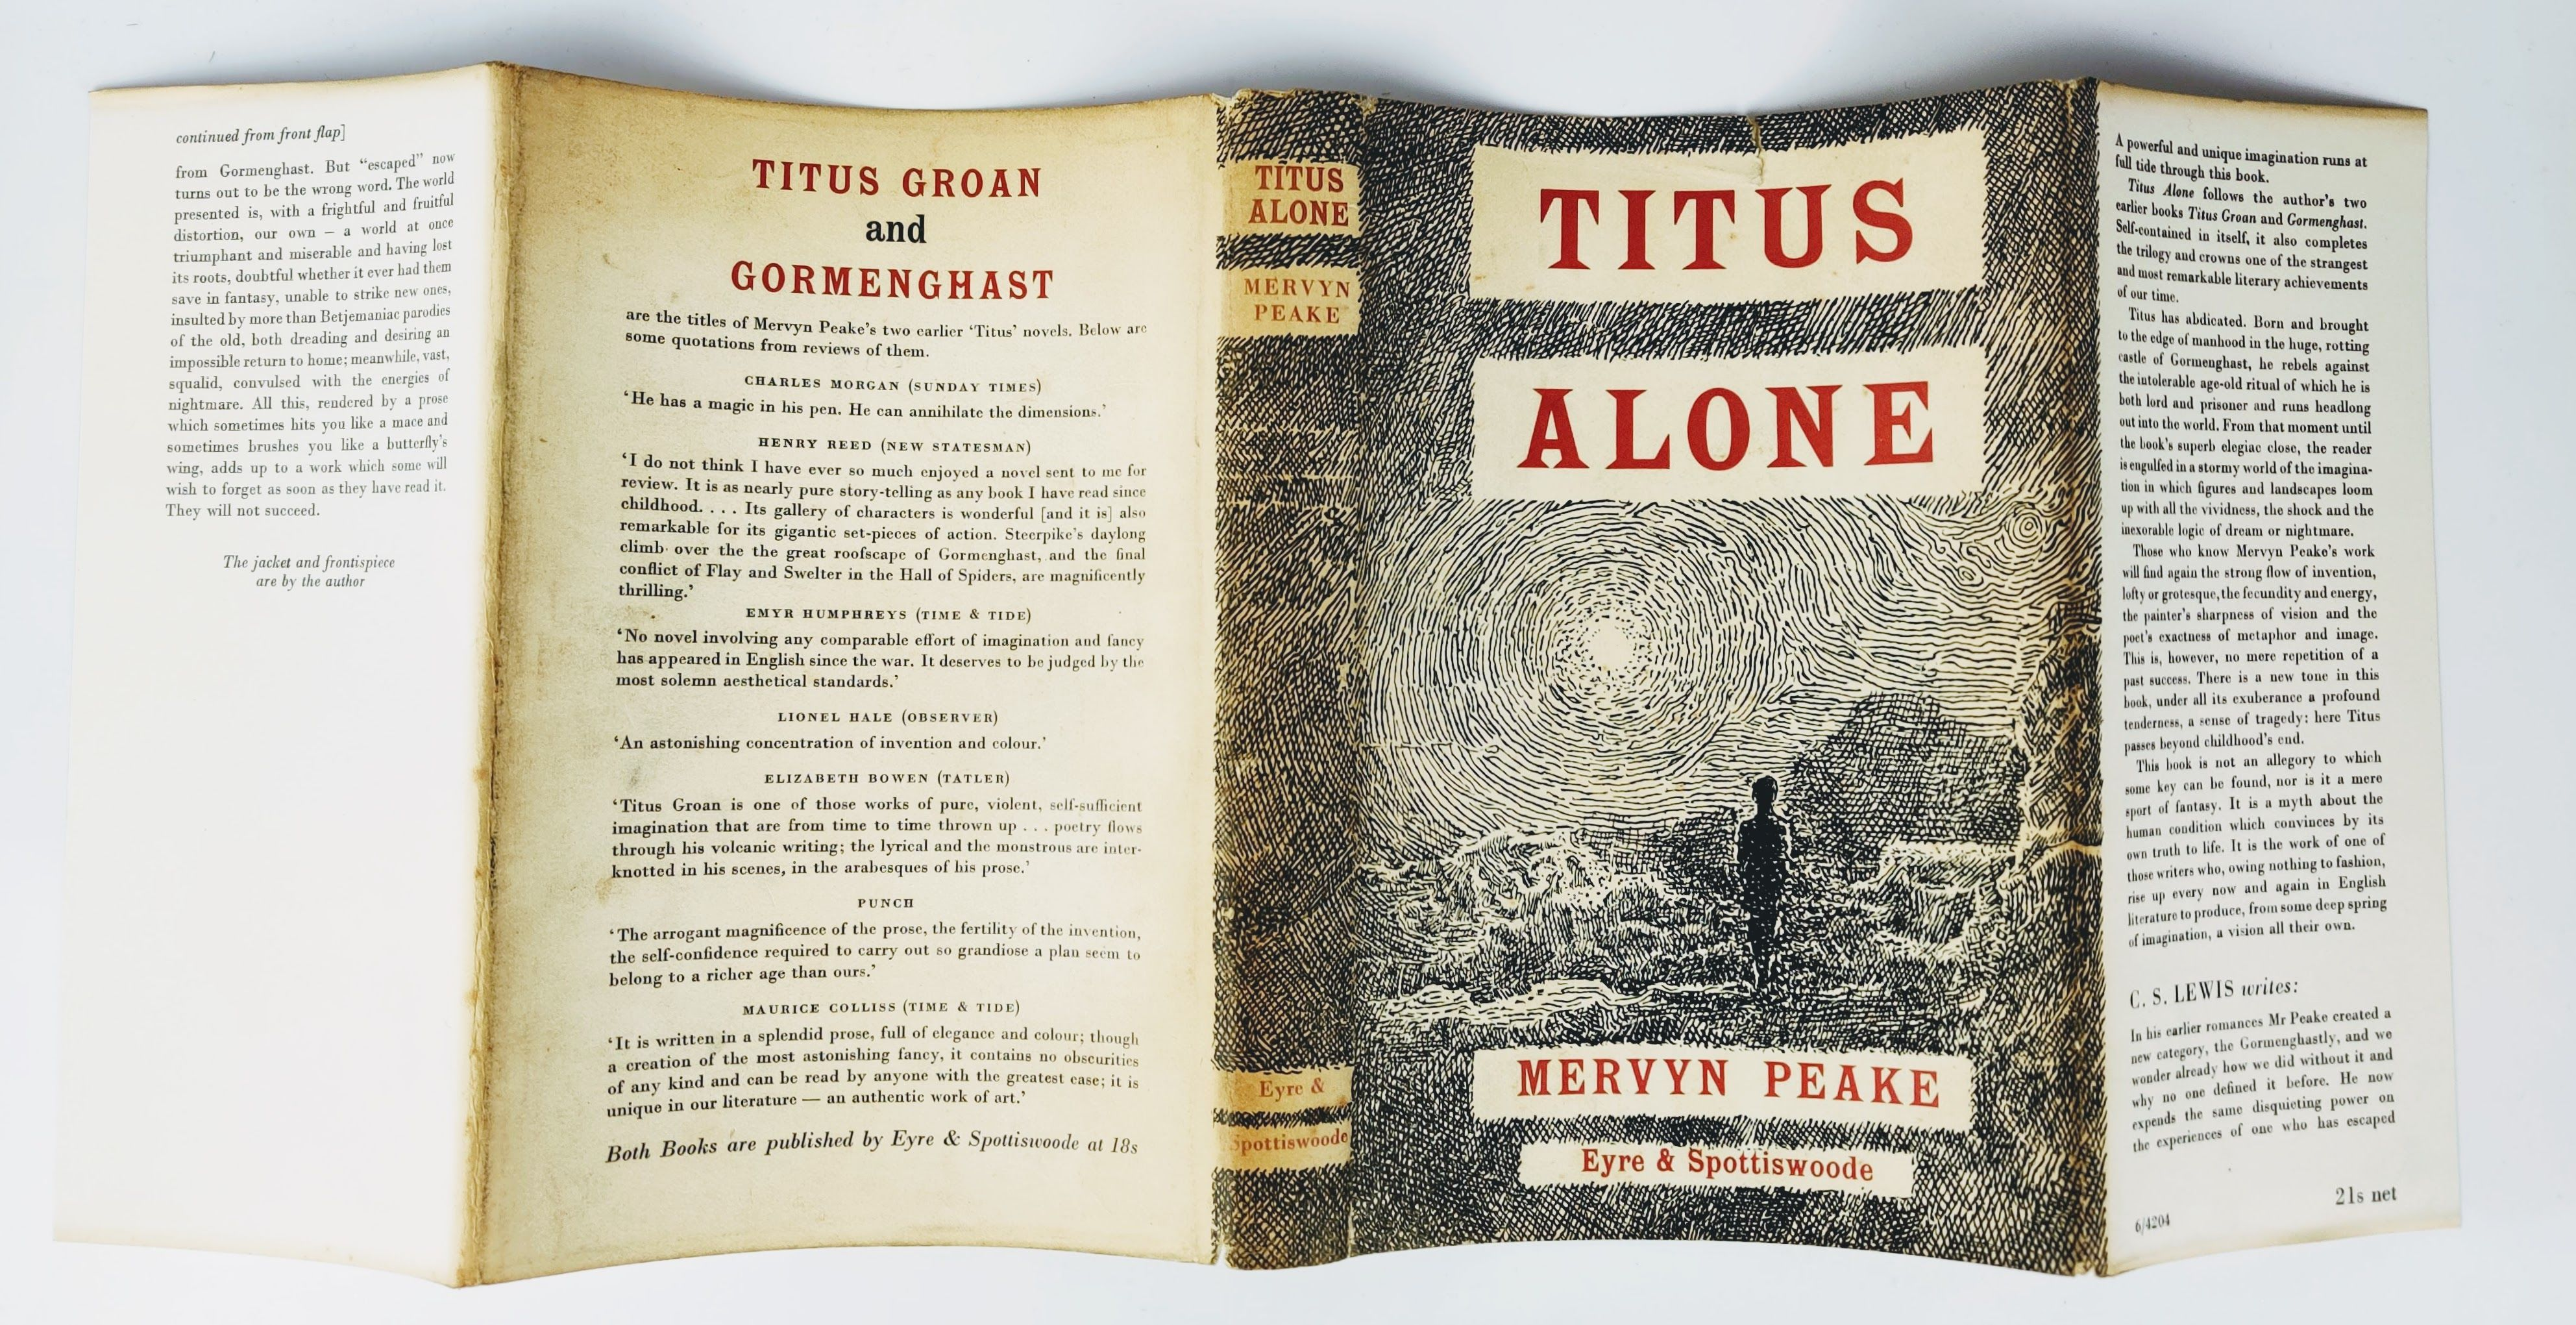 The Gormenghast Trilogy: Titus Groan, Gormenghast and Titus Alone (photo 4)